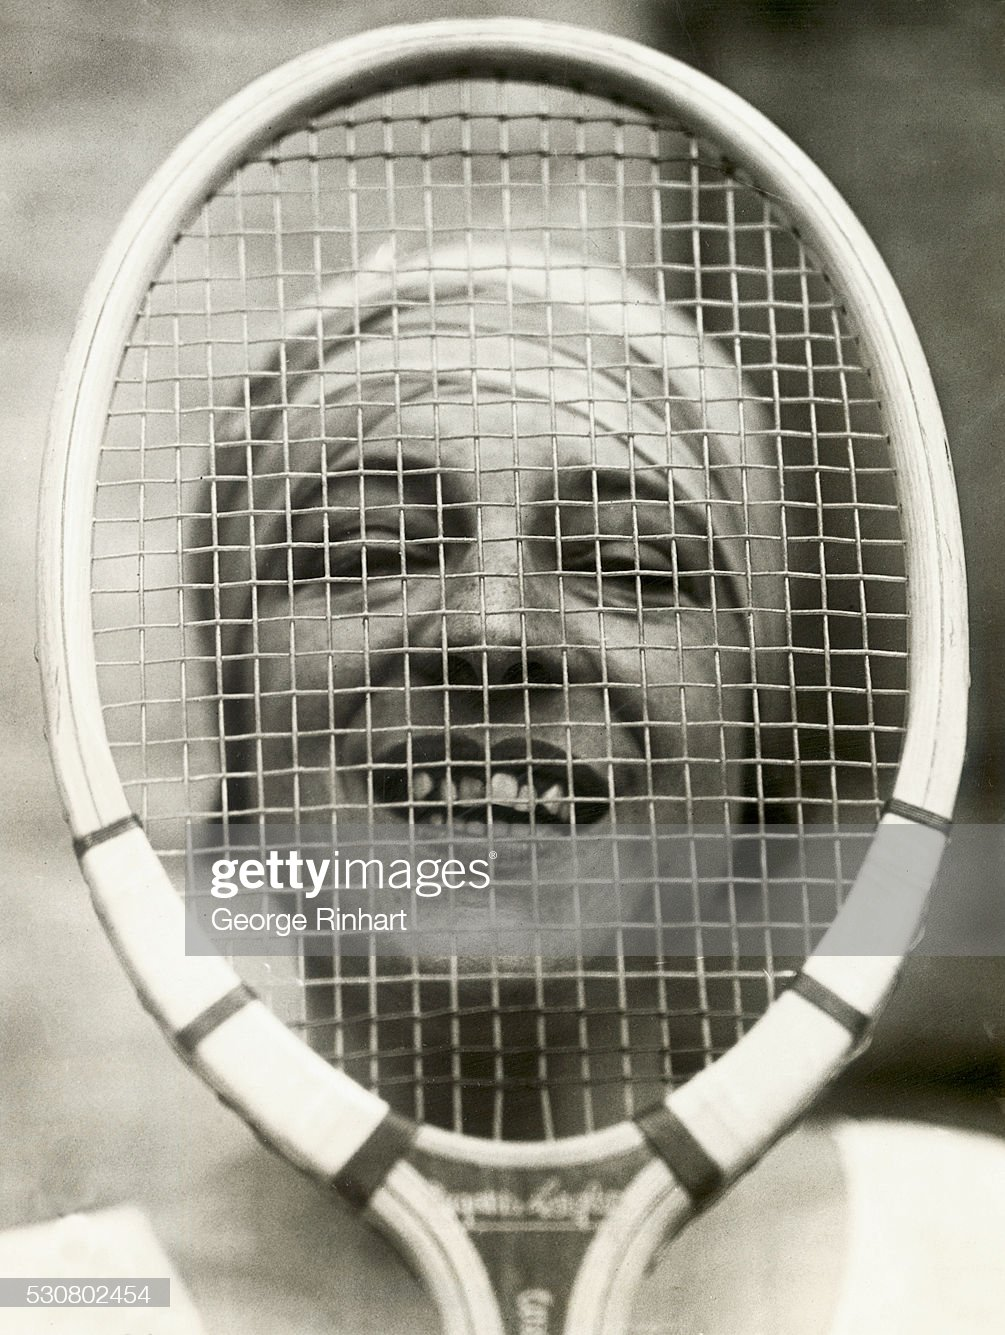 Suzanne Lenglen Looking Through Her Racquet : News Photo